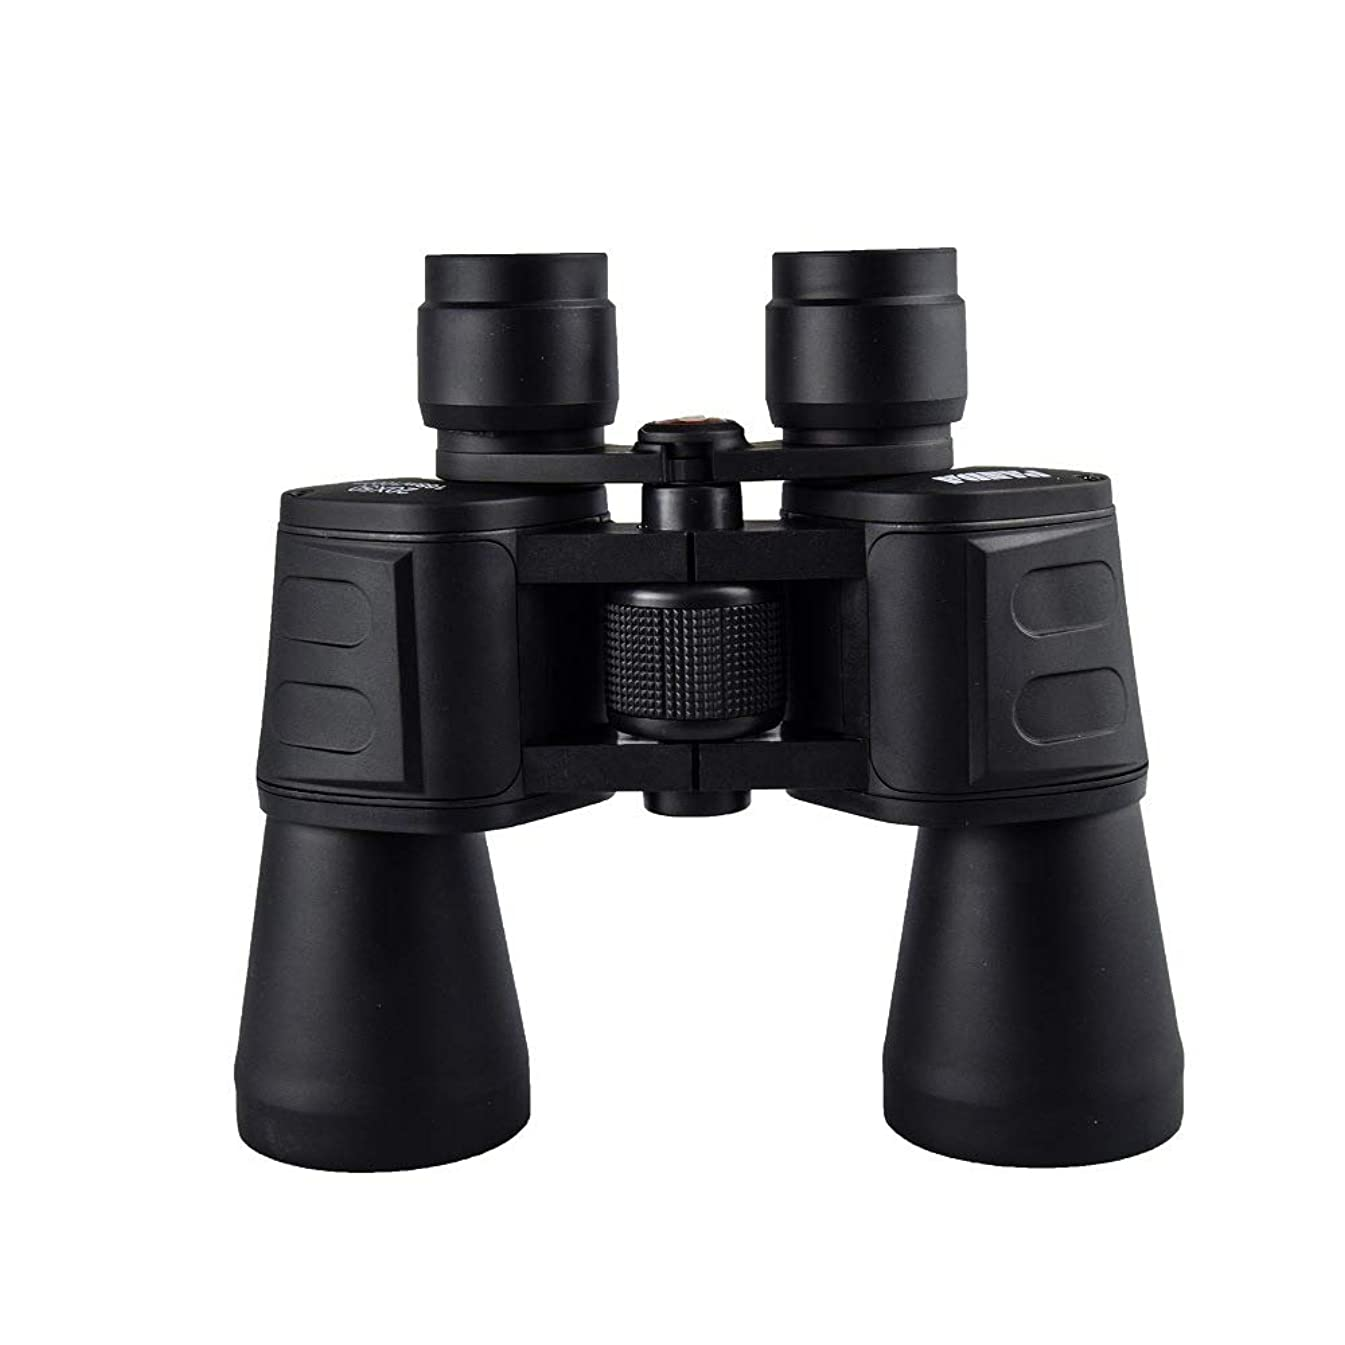 AIMOOW 20X50 Binocular HD Telescope Large Eyepiece Field of View Night Vision Prism with Powerful 10X Long Distance Zoom Easy Focus Knob Clear Angle Suitable for Travel Hiking Bird Watching